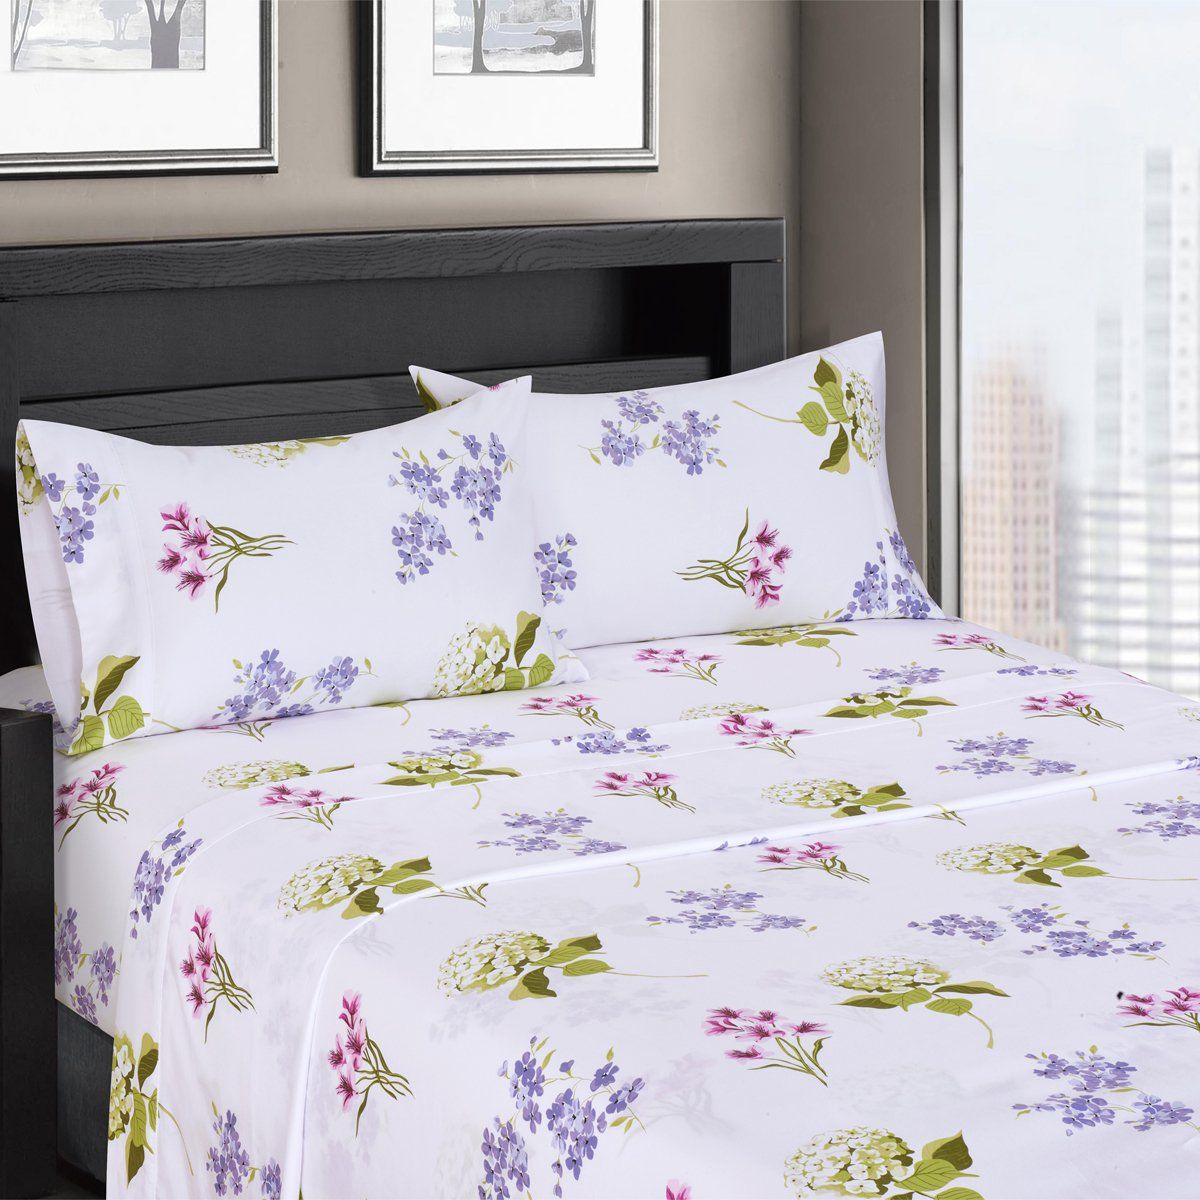 Blossom Floral Sateen Cotton Sheets 4pc CaliforniaKing Bed Sheet